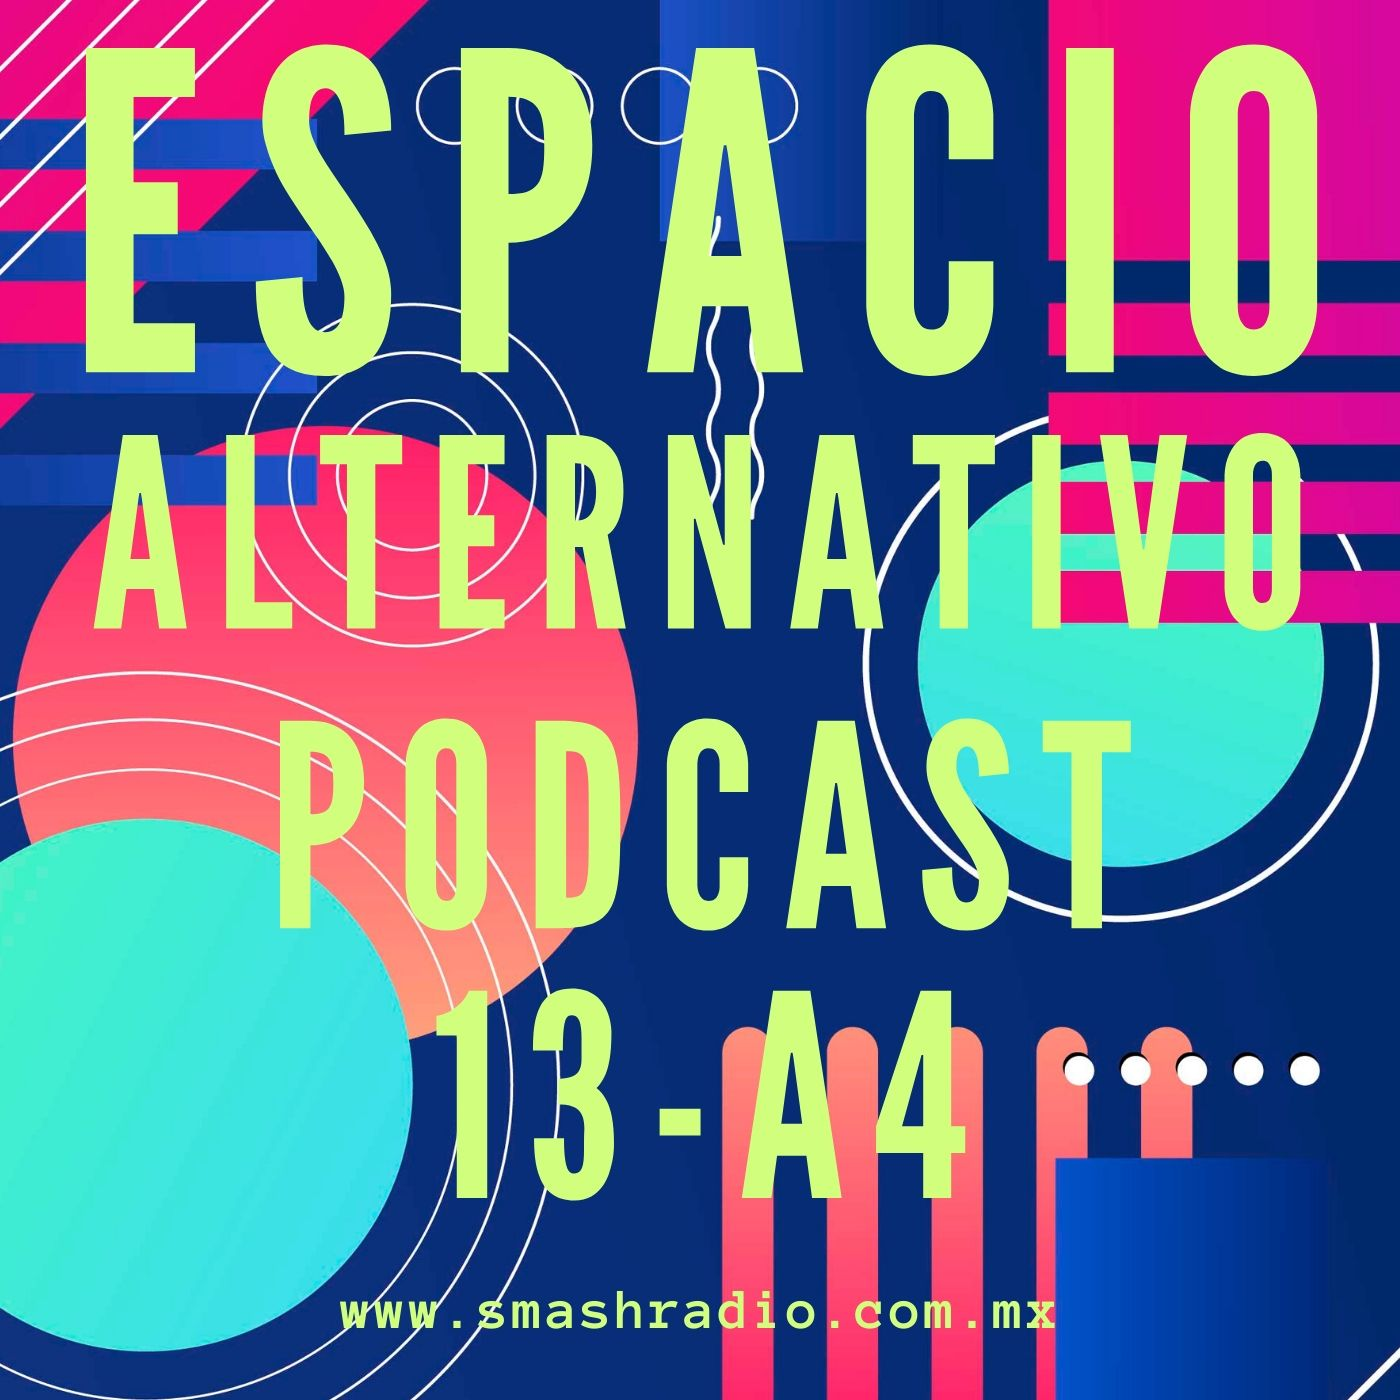 Espacio_Alternativo_Podcast_13-a4